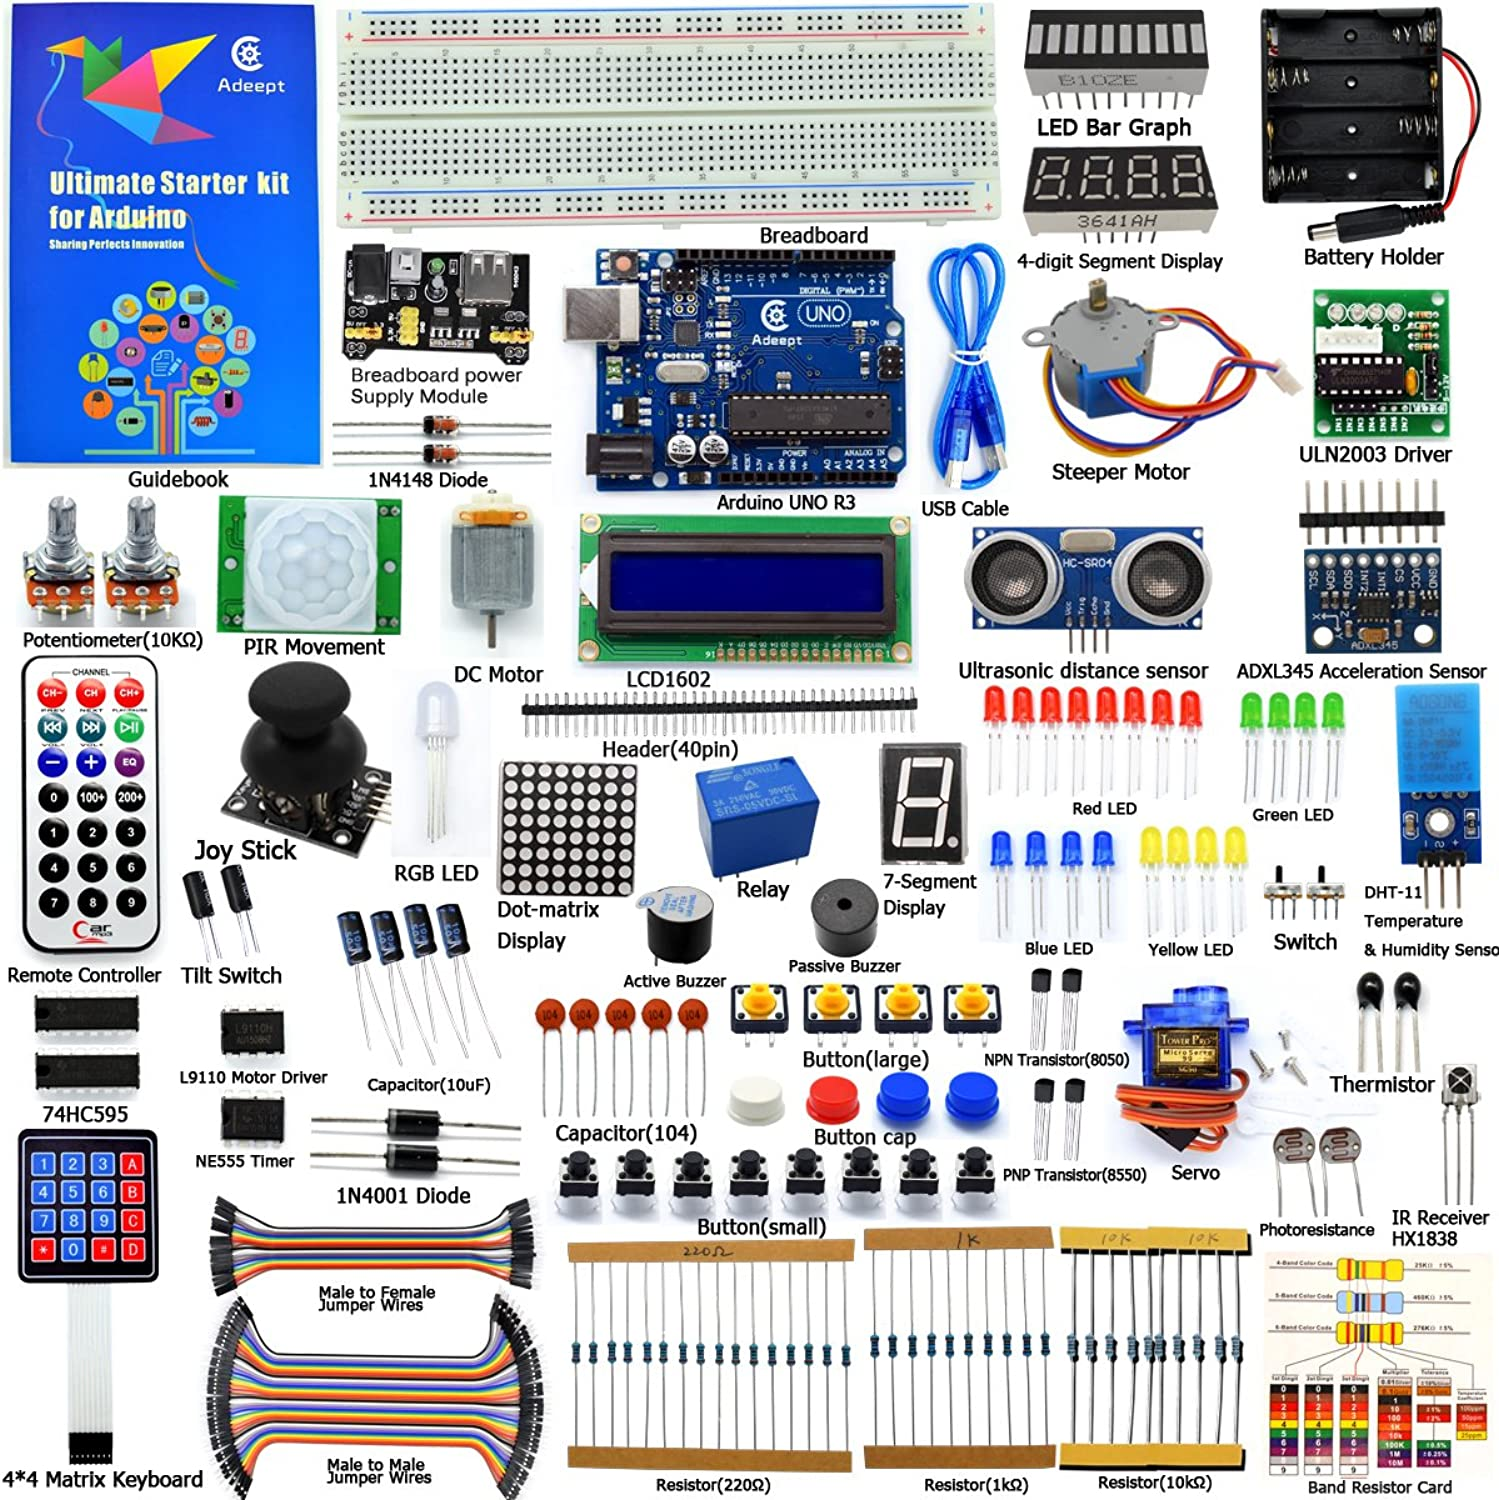 Adeept Ultimate Starter Kit for Arduino UNO R3, LCD1602, Servo Motor, Relay, Processing and C Code, Beginner Starter Kit with 140 Pages Guidebook Instructions Book